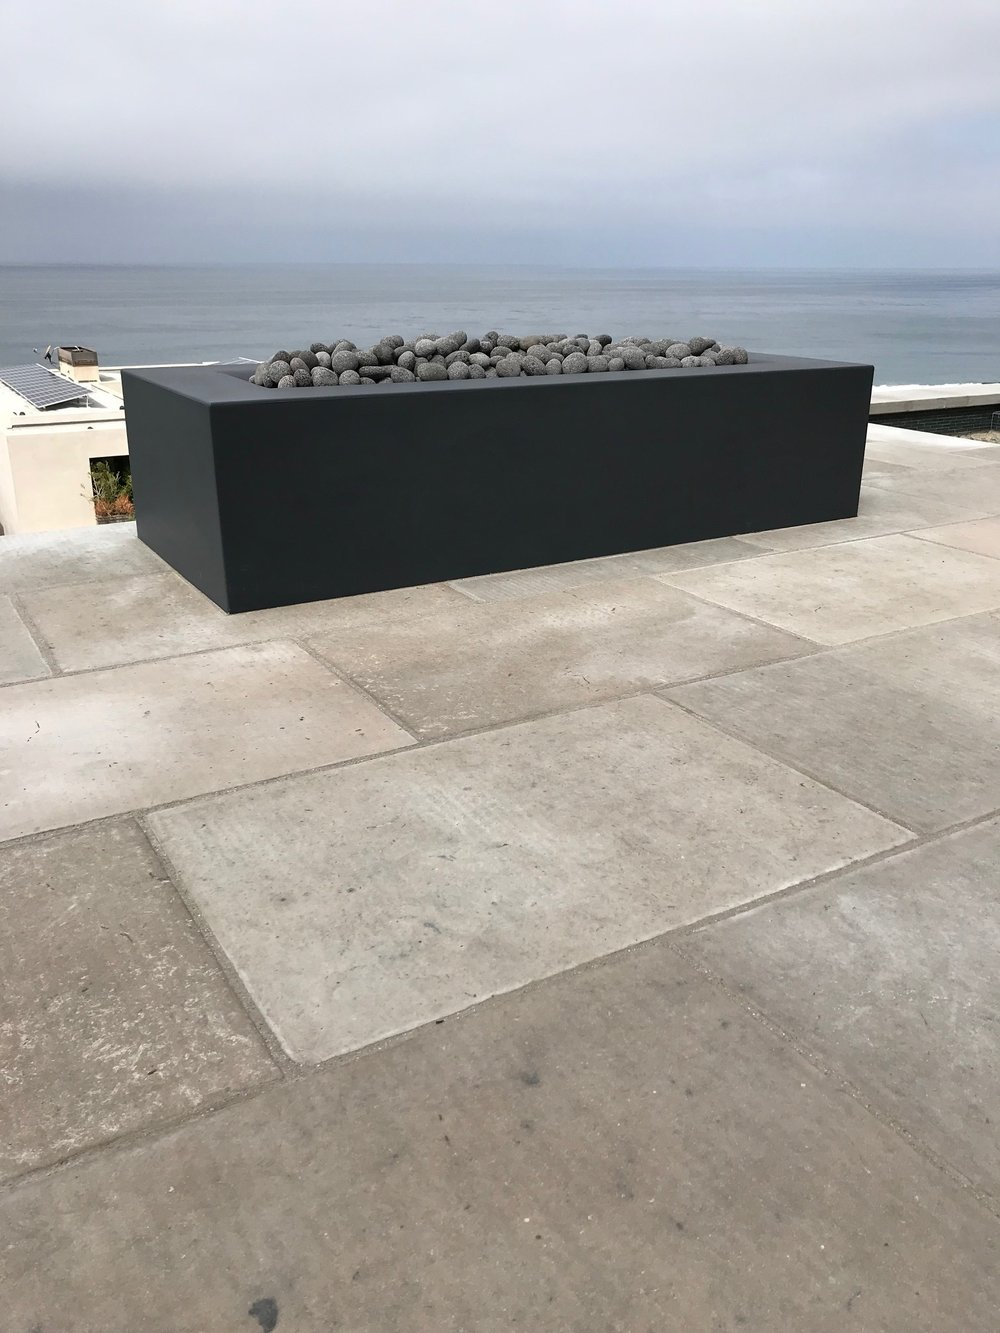 Landscape construction including fire features in Dana Point, California, United States